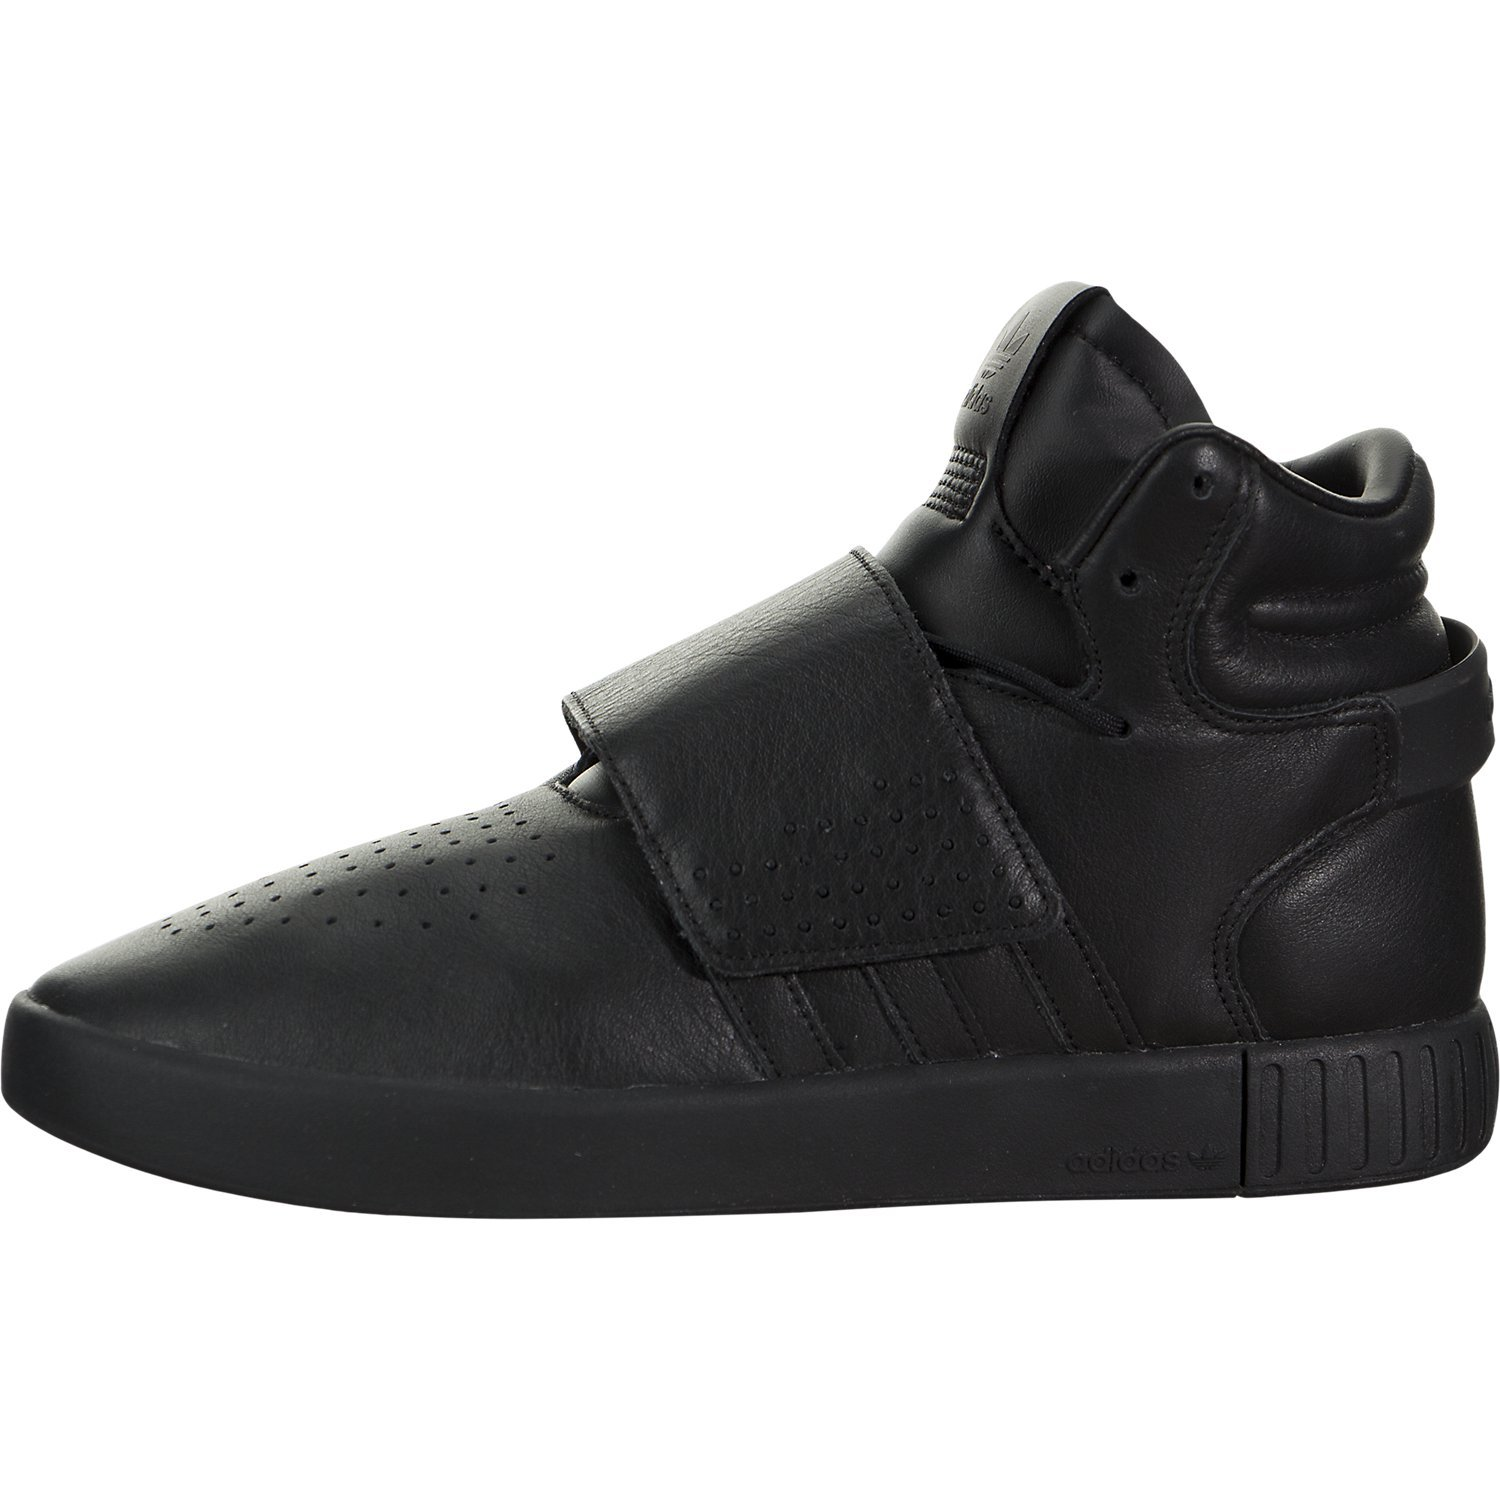 Adids Strap Shoes Youth Tubular Invader TJlKF1c